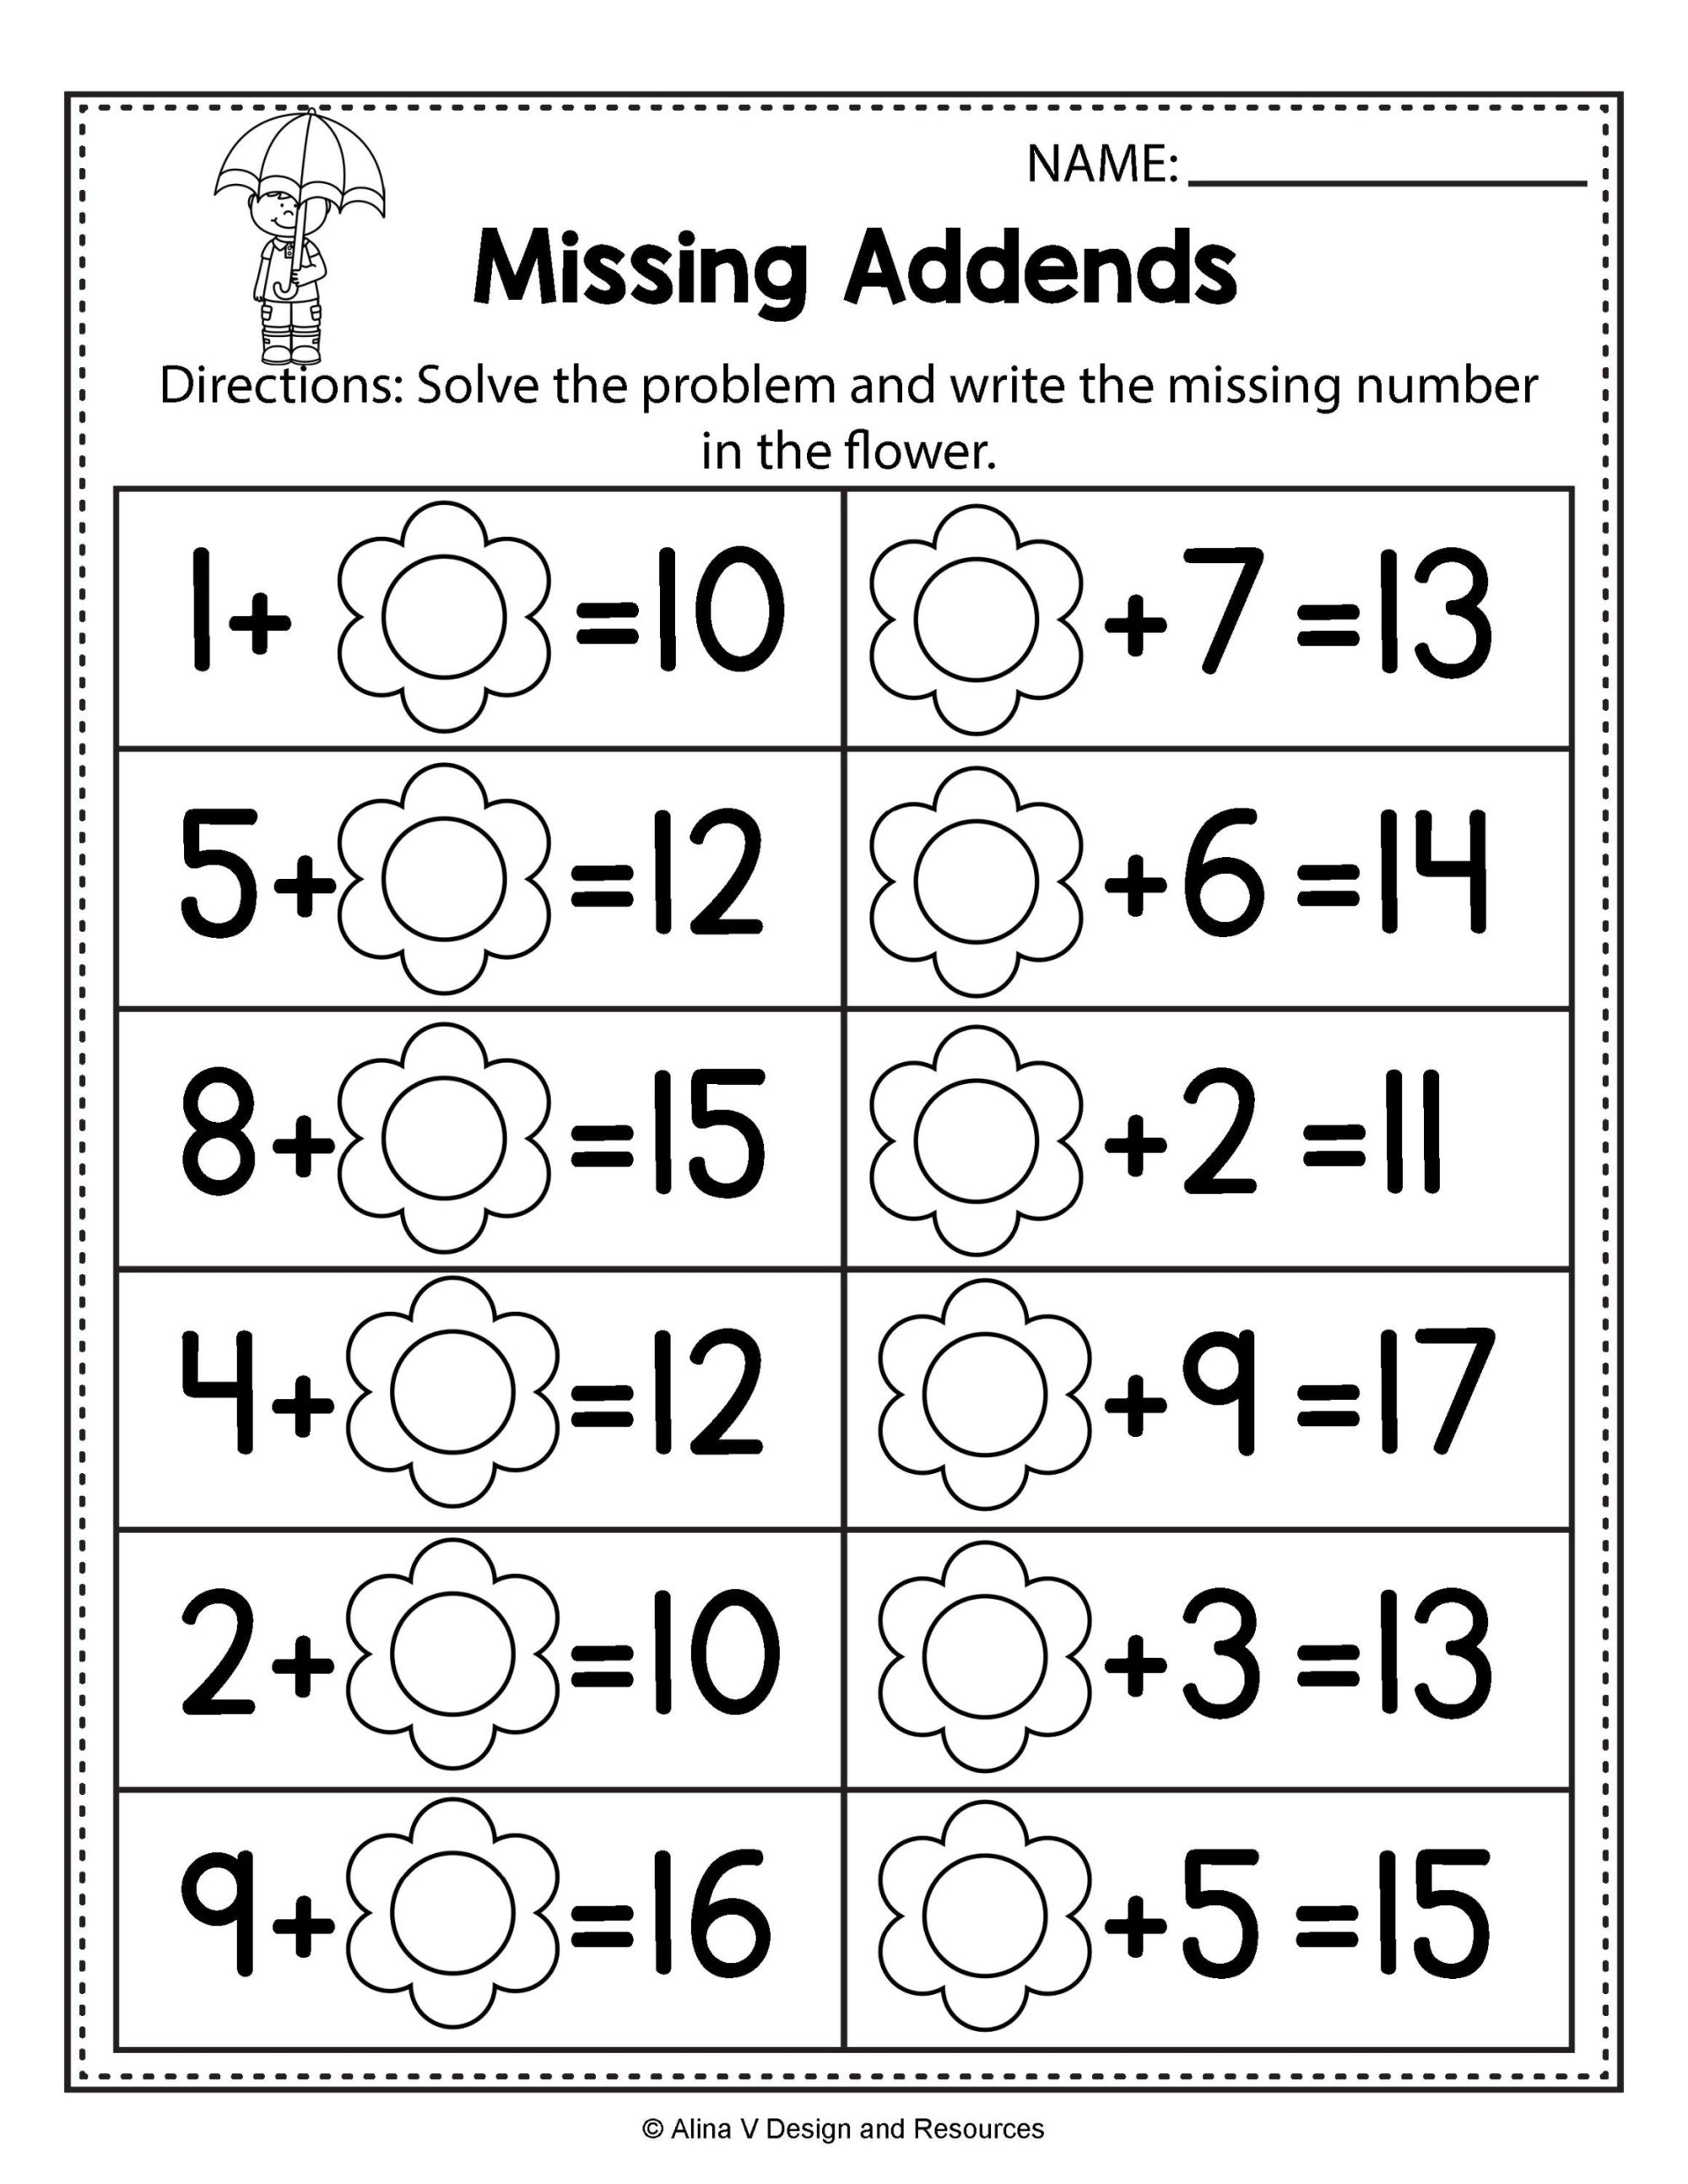 hight resolution of 21 Best 1st Grade Matching Worksheets images on Best Worksheets Collection